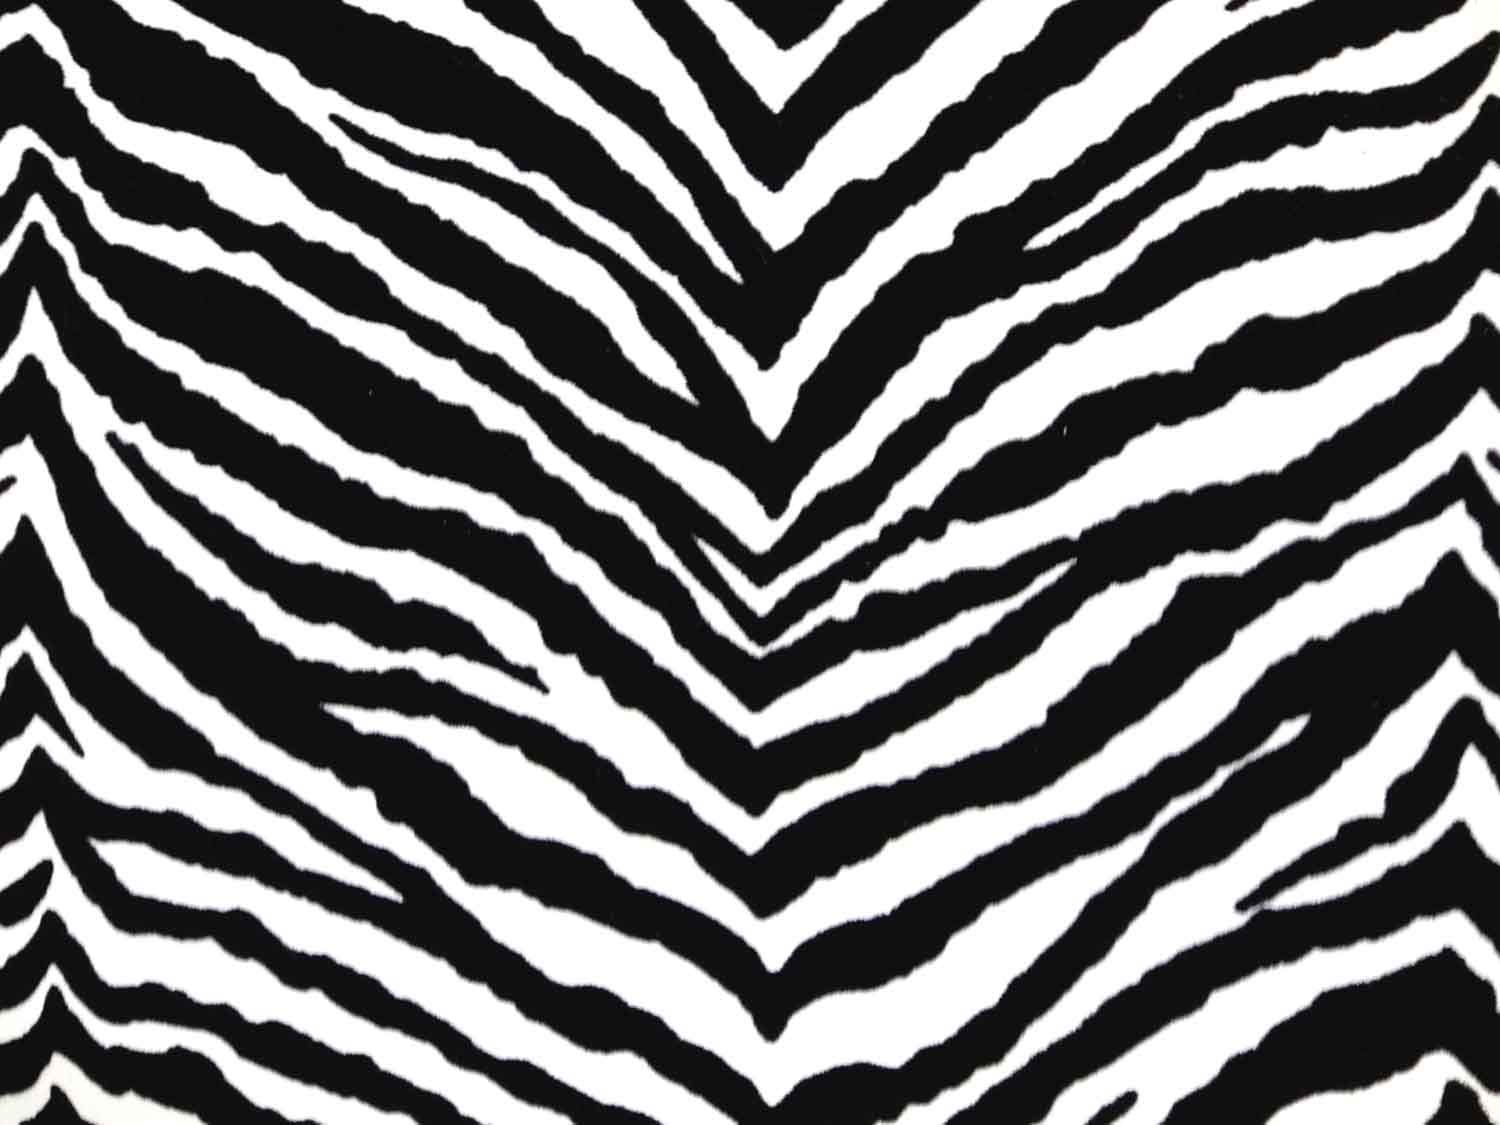 zebra print coloring pages 18 pictures colorine net 17857 - Zebra Print Coloring Pages